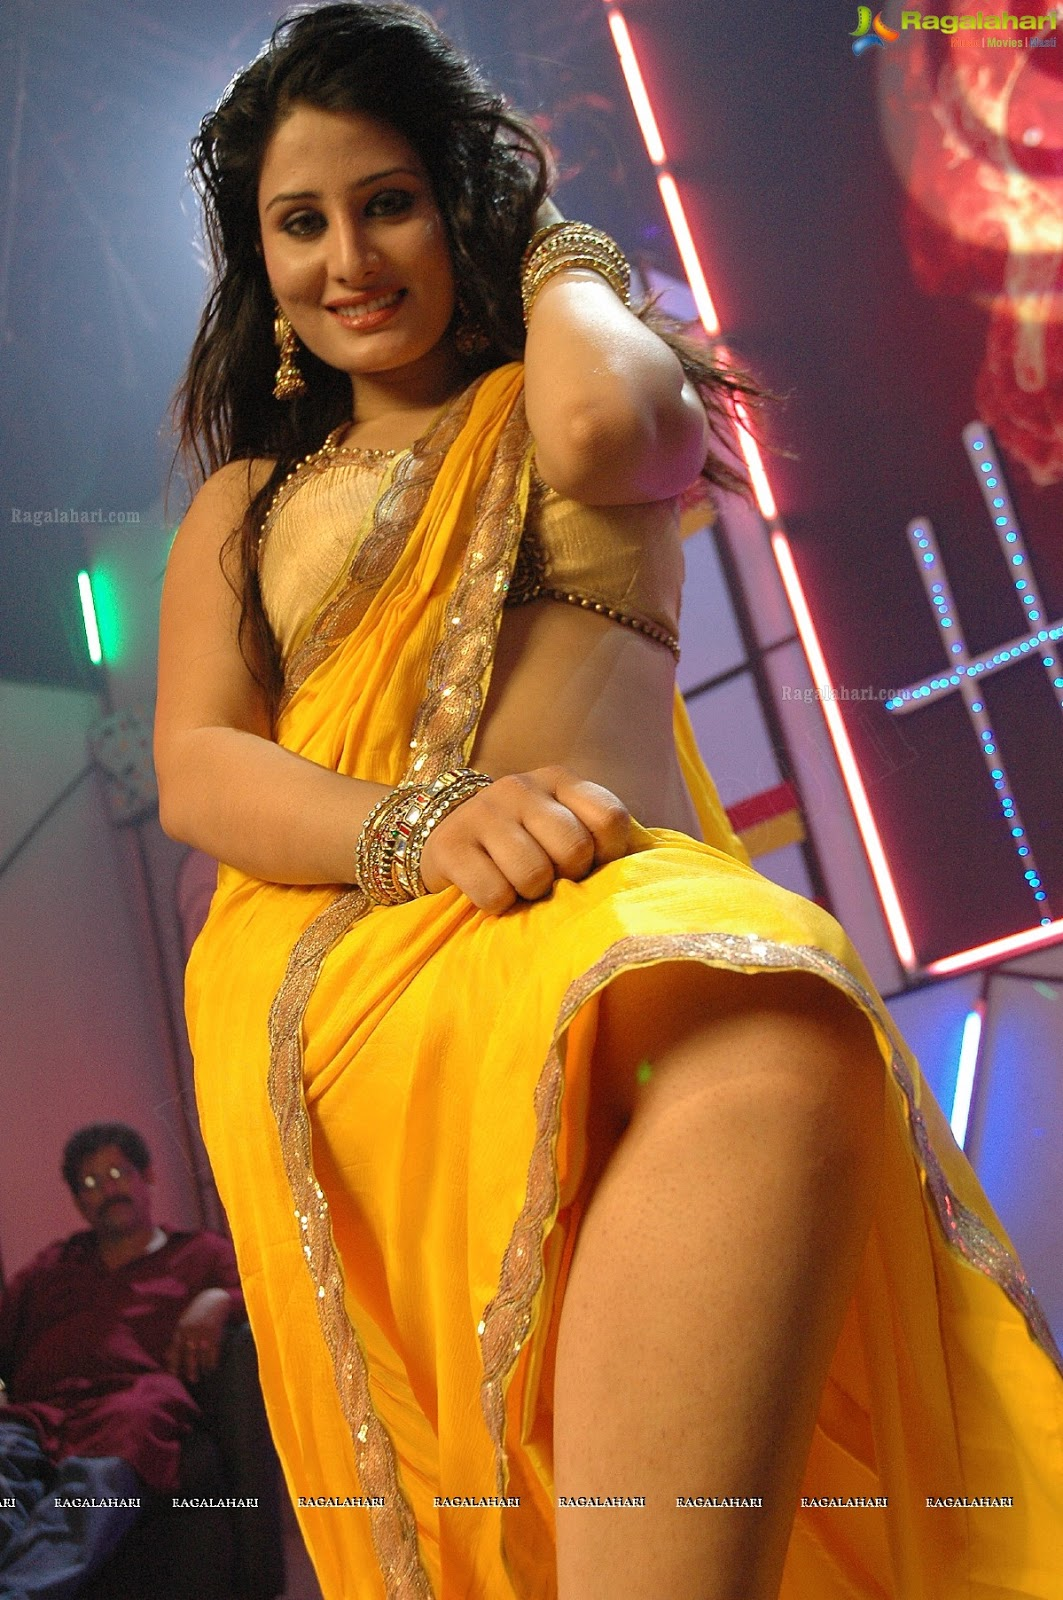 Actress hot in saree must watch enjoy weekend page 4 movie teluguactressajjuhotnavelandcleava thecheapjerseys Image collections